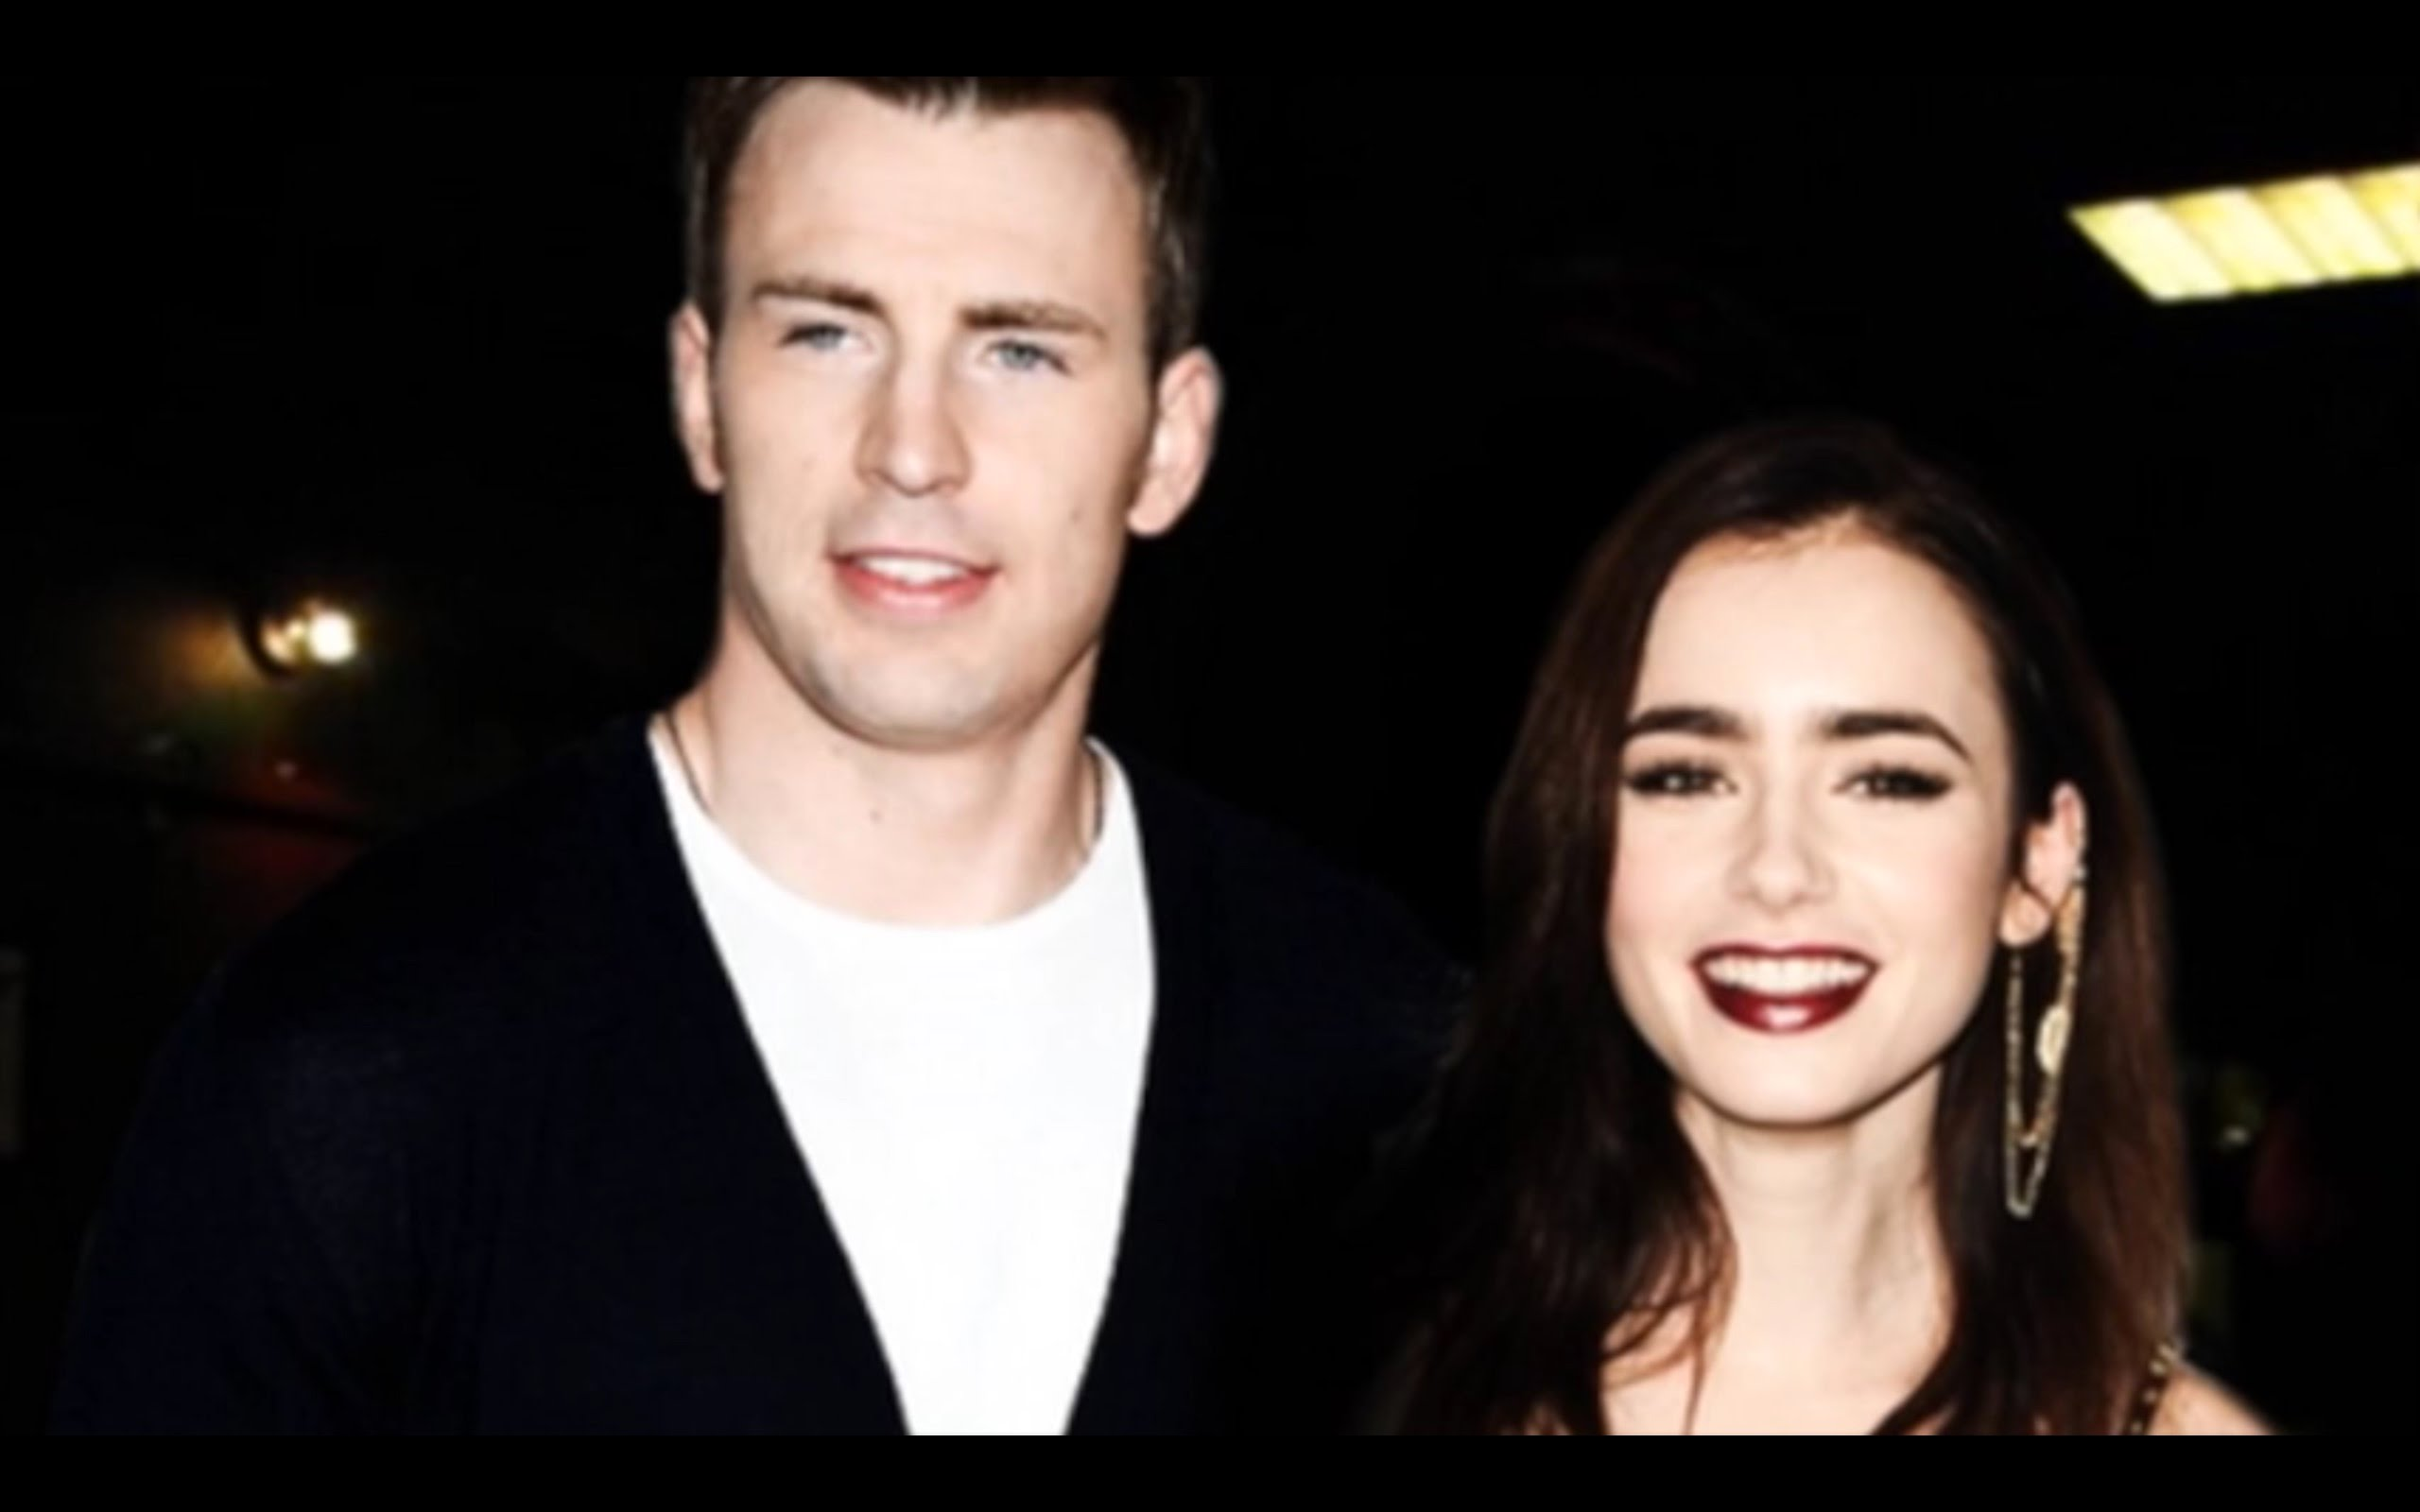 lily collins dating February 03, 2016 - 09:26 gmt hellomagazinecom nick jonas and lily collins are reportedly dating, an insider revealed: they are having fun nick jonas is often at the centre of a romance rumour and this time he has been linked to actress lily collins the new couple have reportedly been spending.